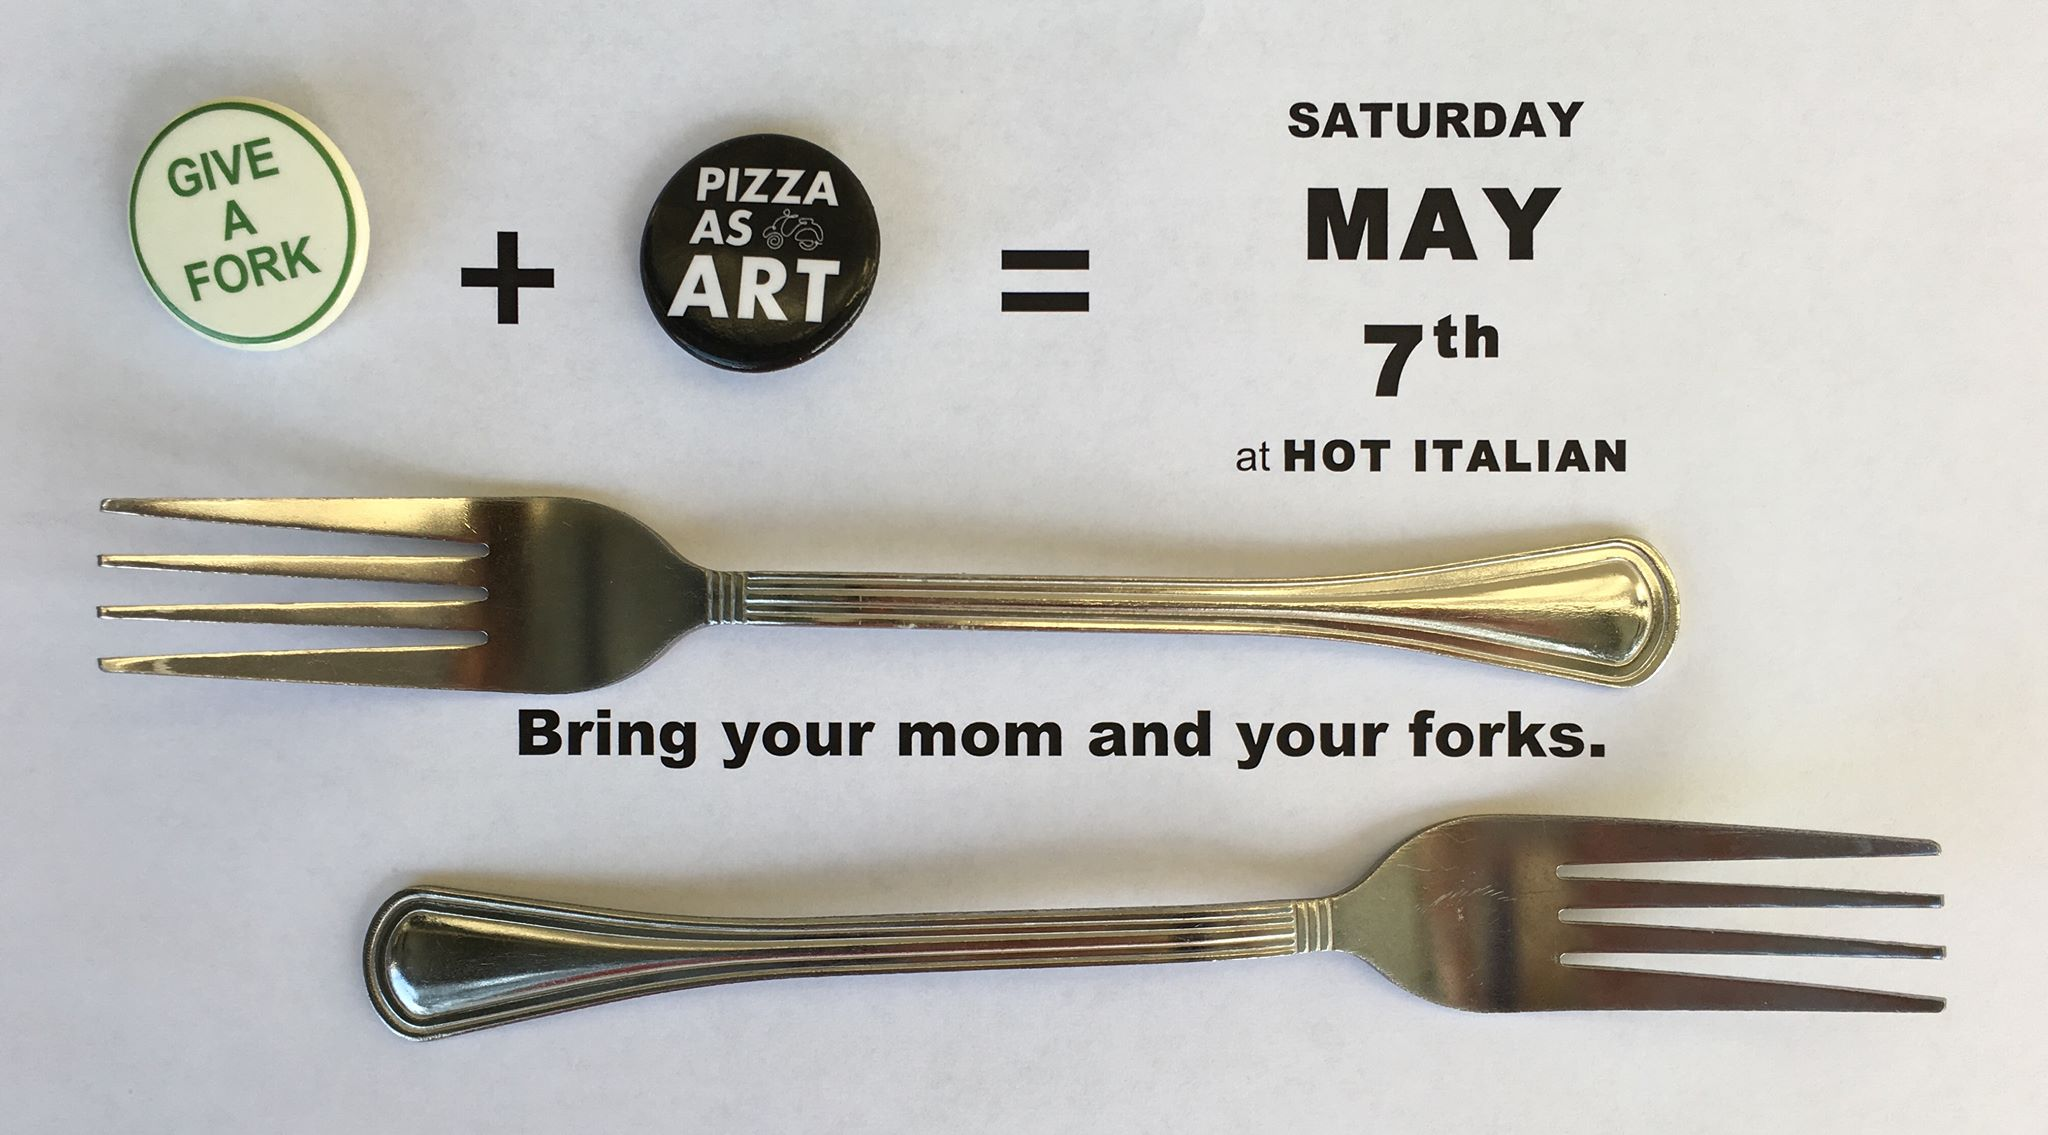 Give a Fork